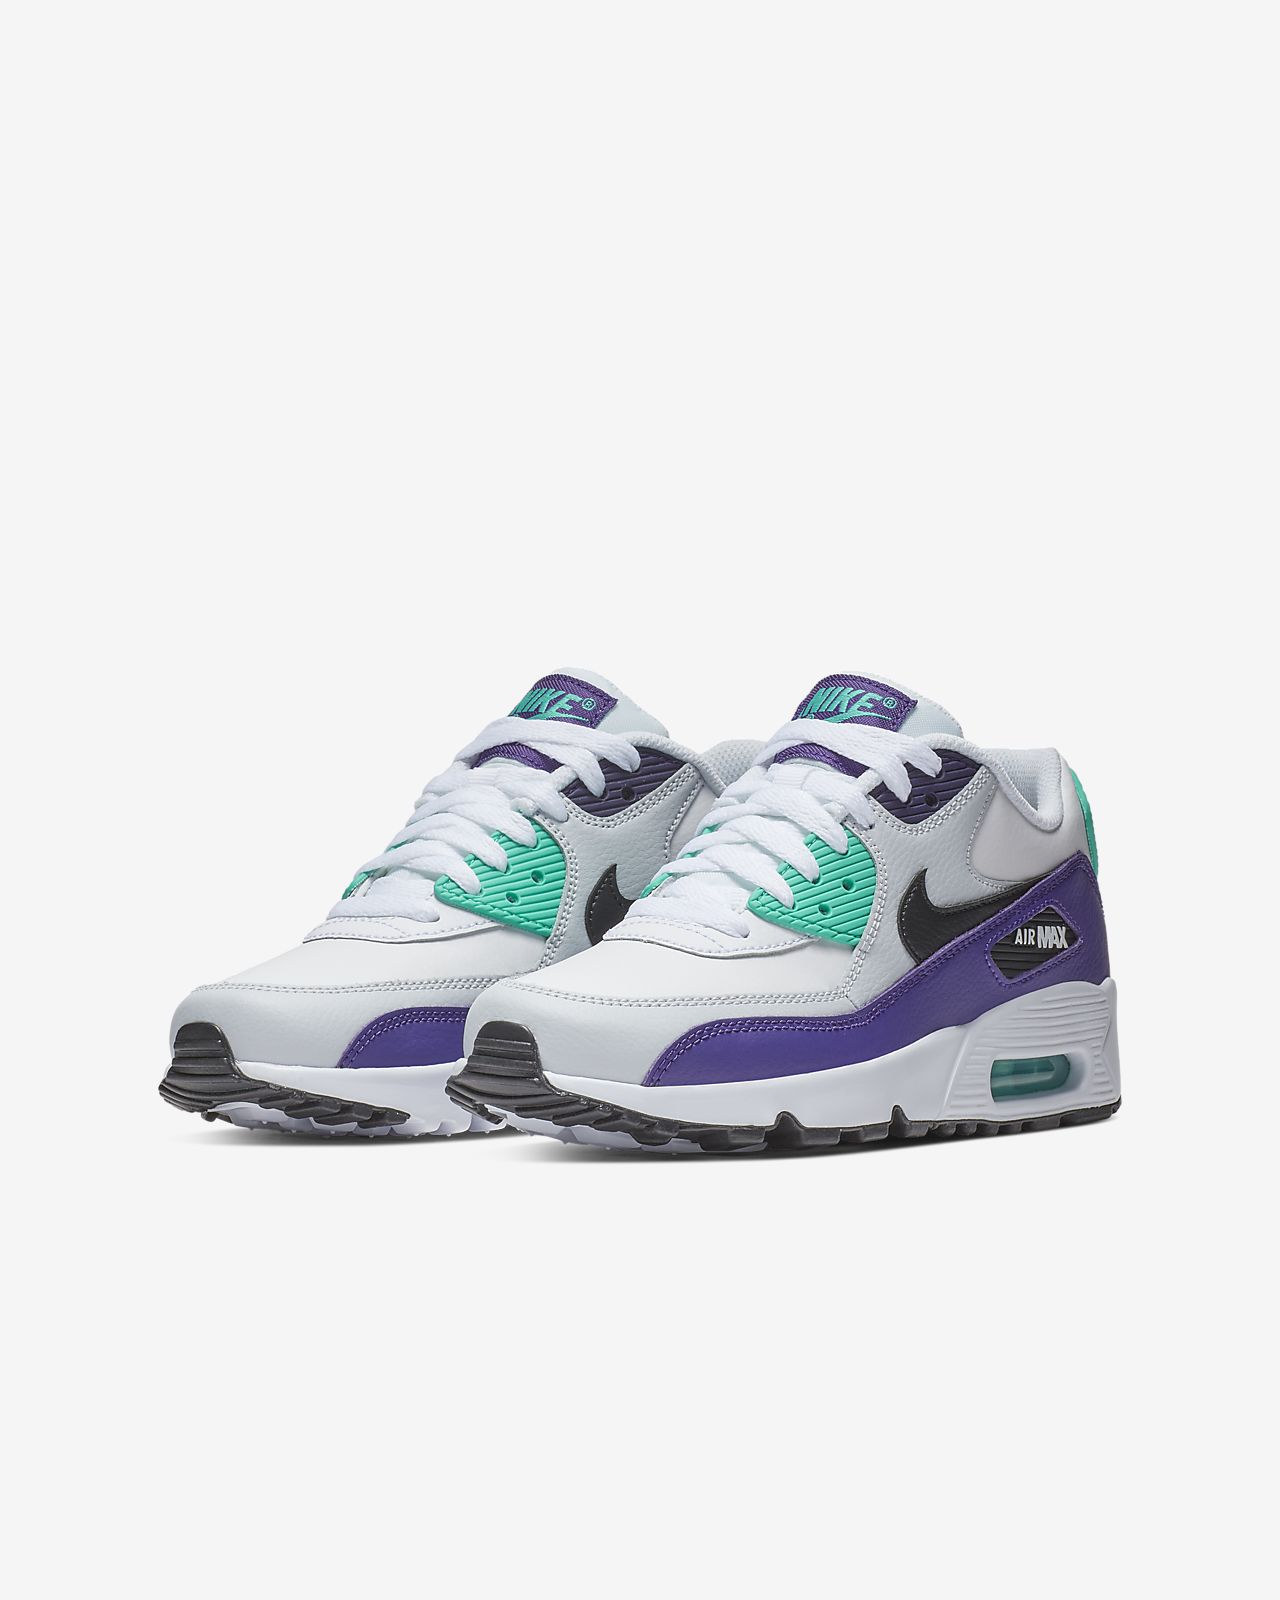 reputable site afeeb d6d65 ... Nike Air Max 90 Leather Older Kids  Shoe